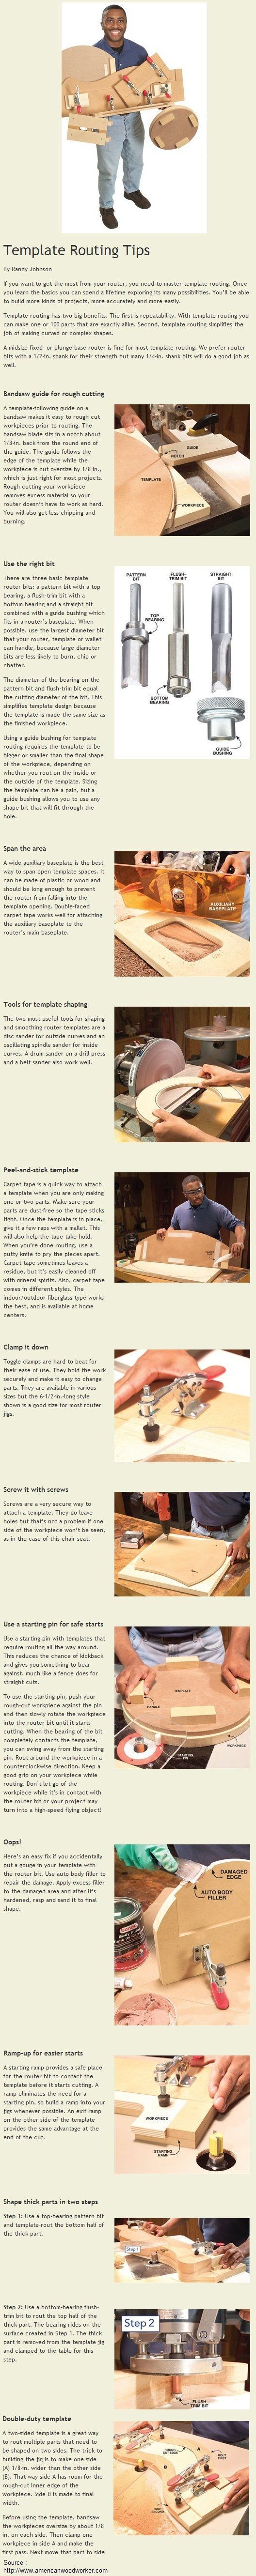 197 best router images on pinterest carpentry router table and tools